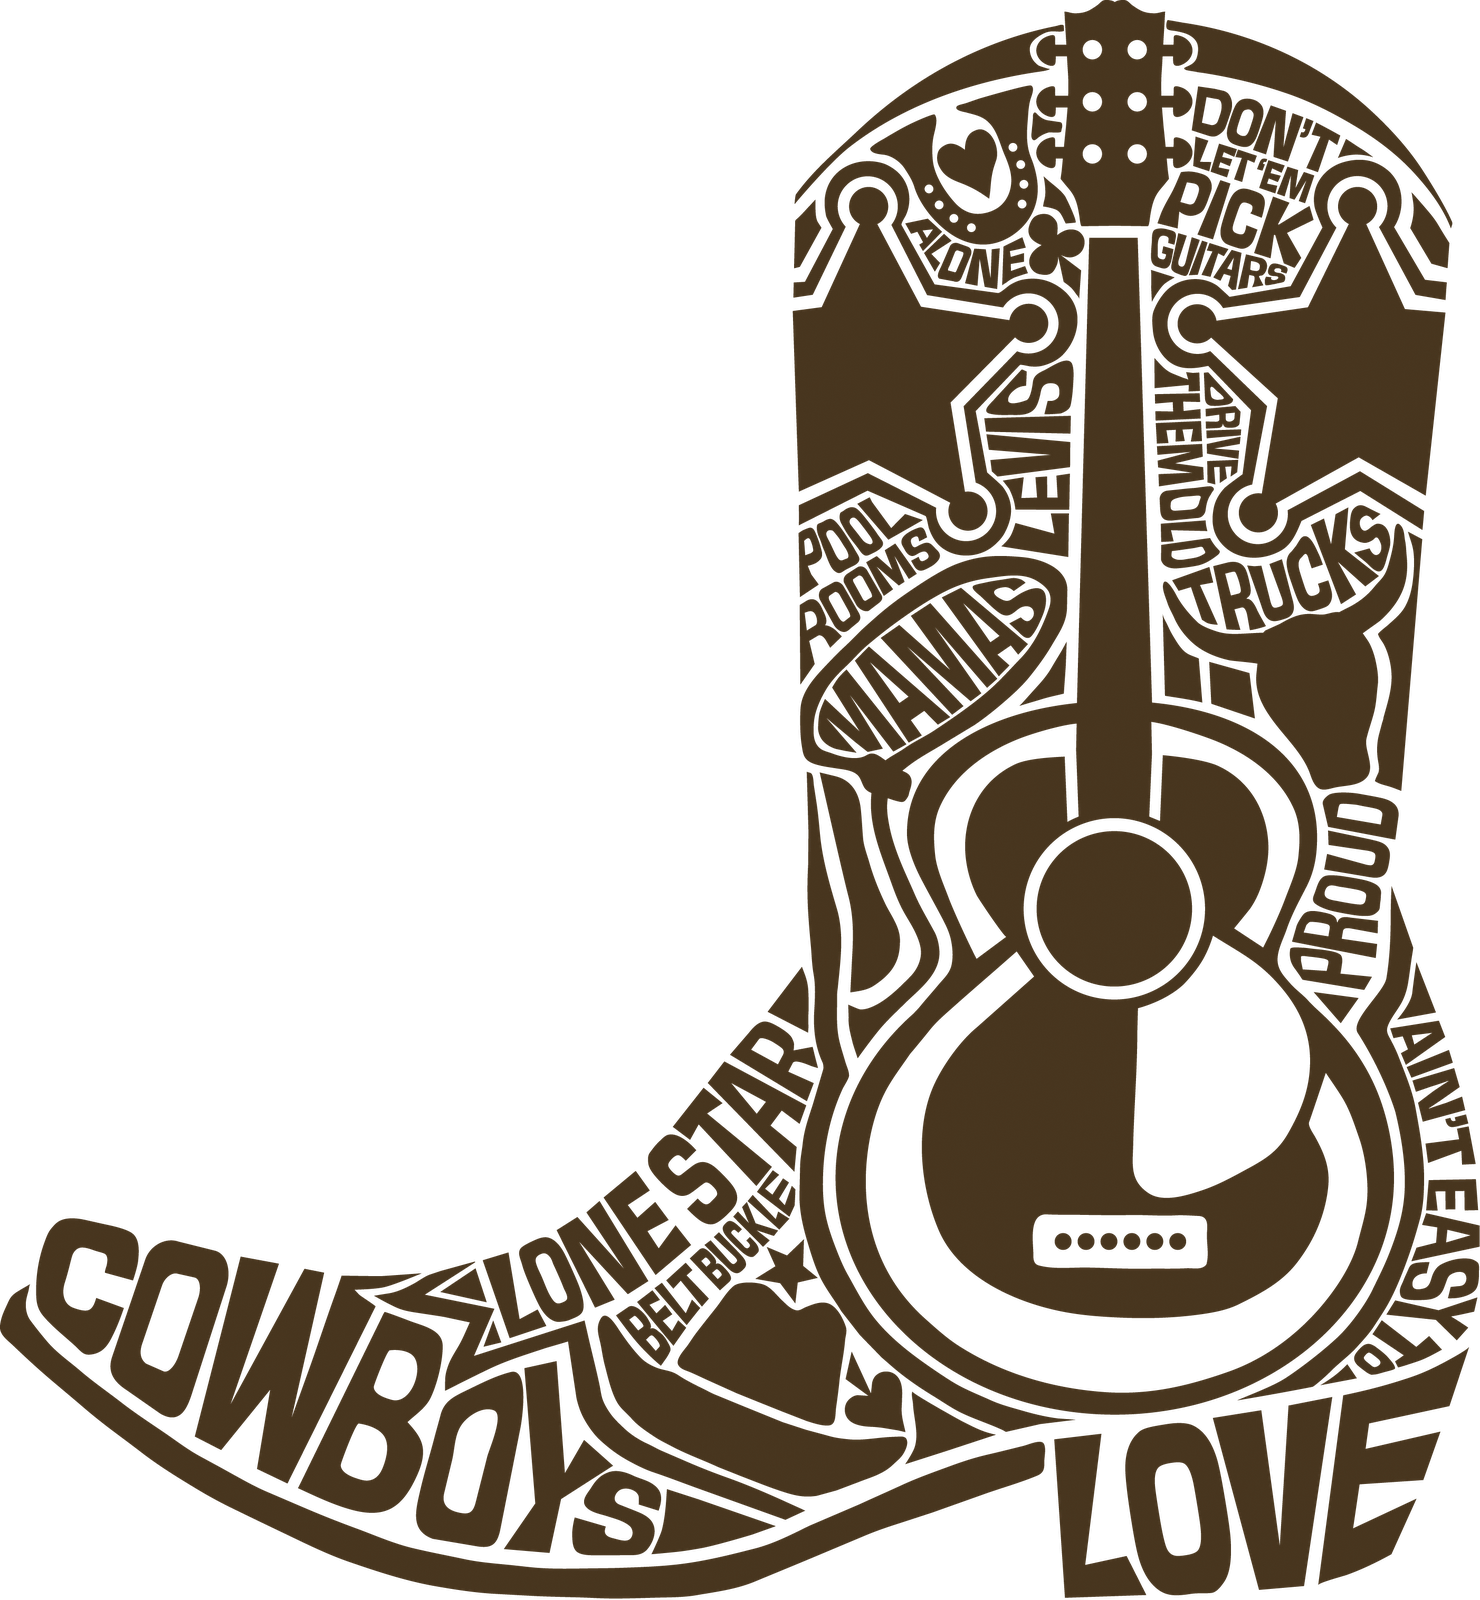 cowboy boot logo wwwpixsharkcom images galleries